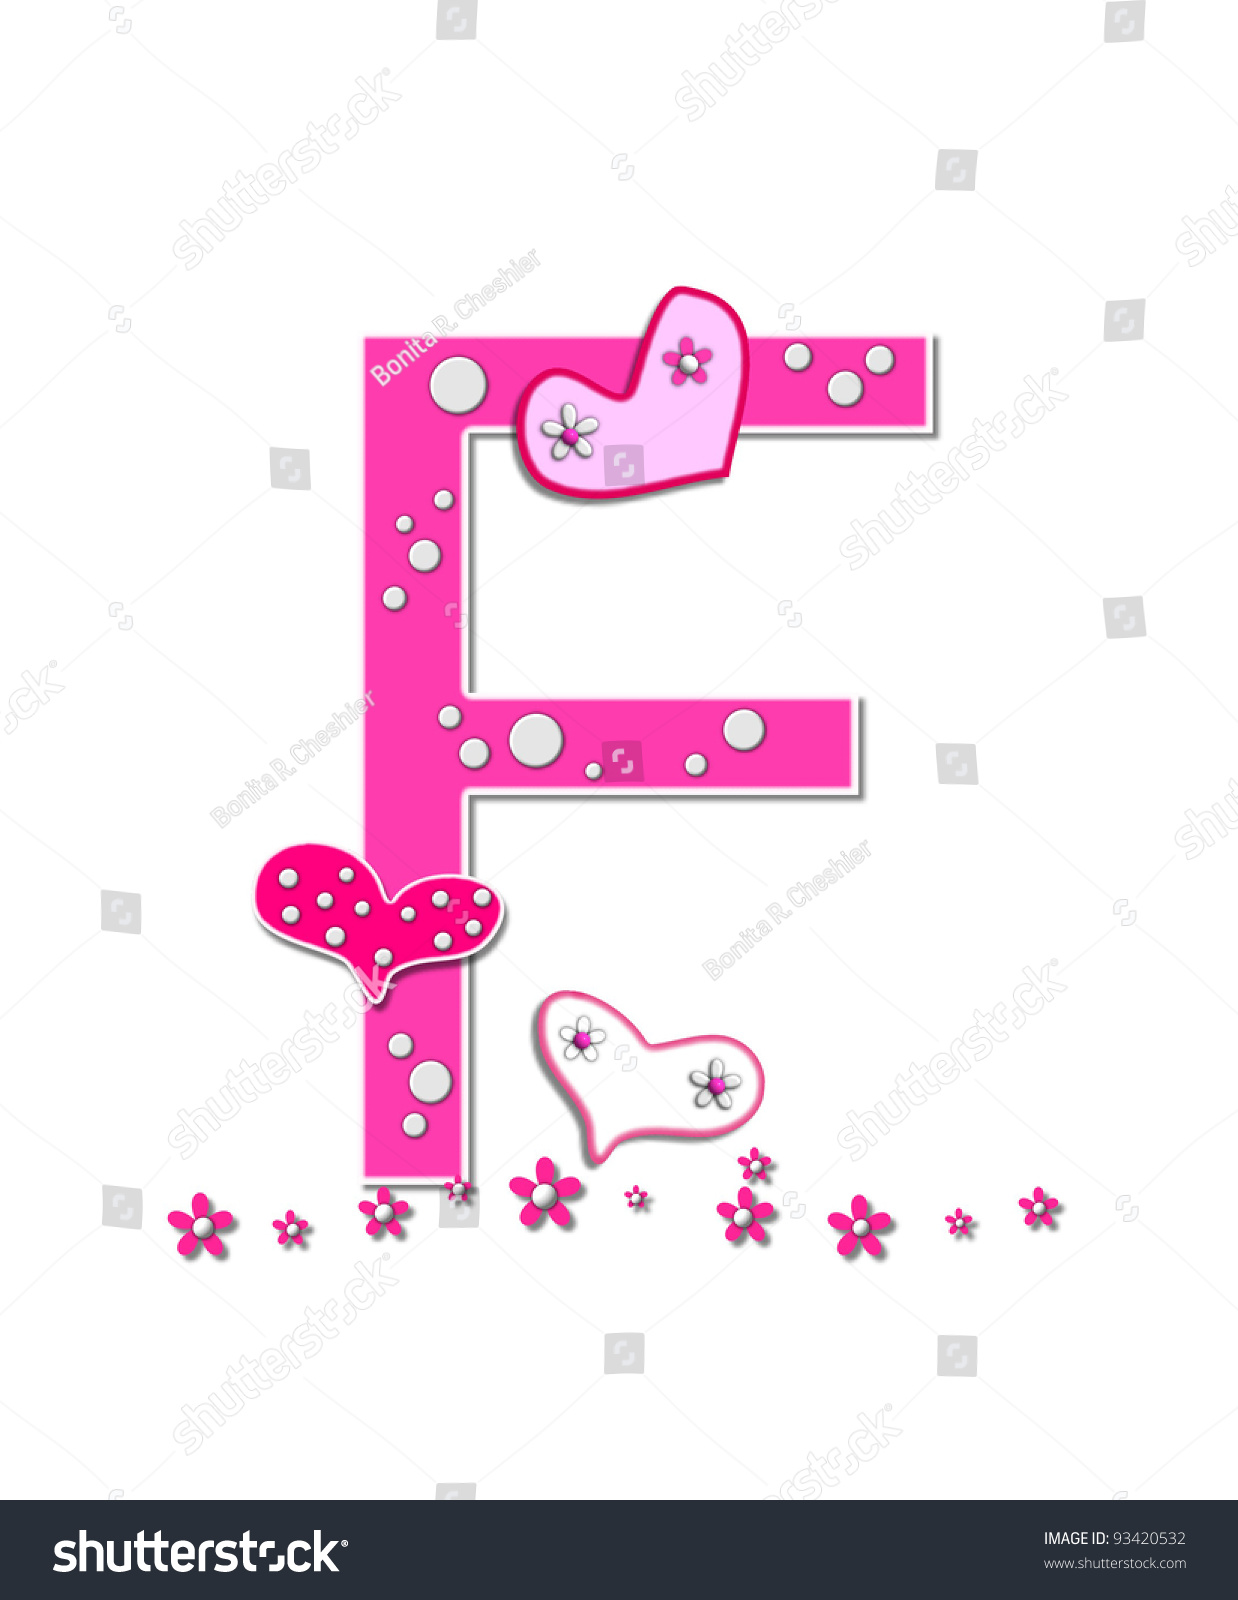 Images of U Letter In Heart - #SpaceHero